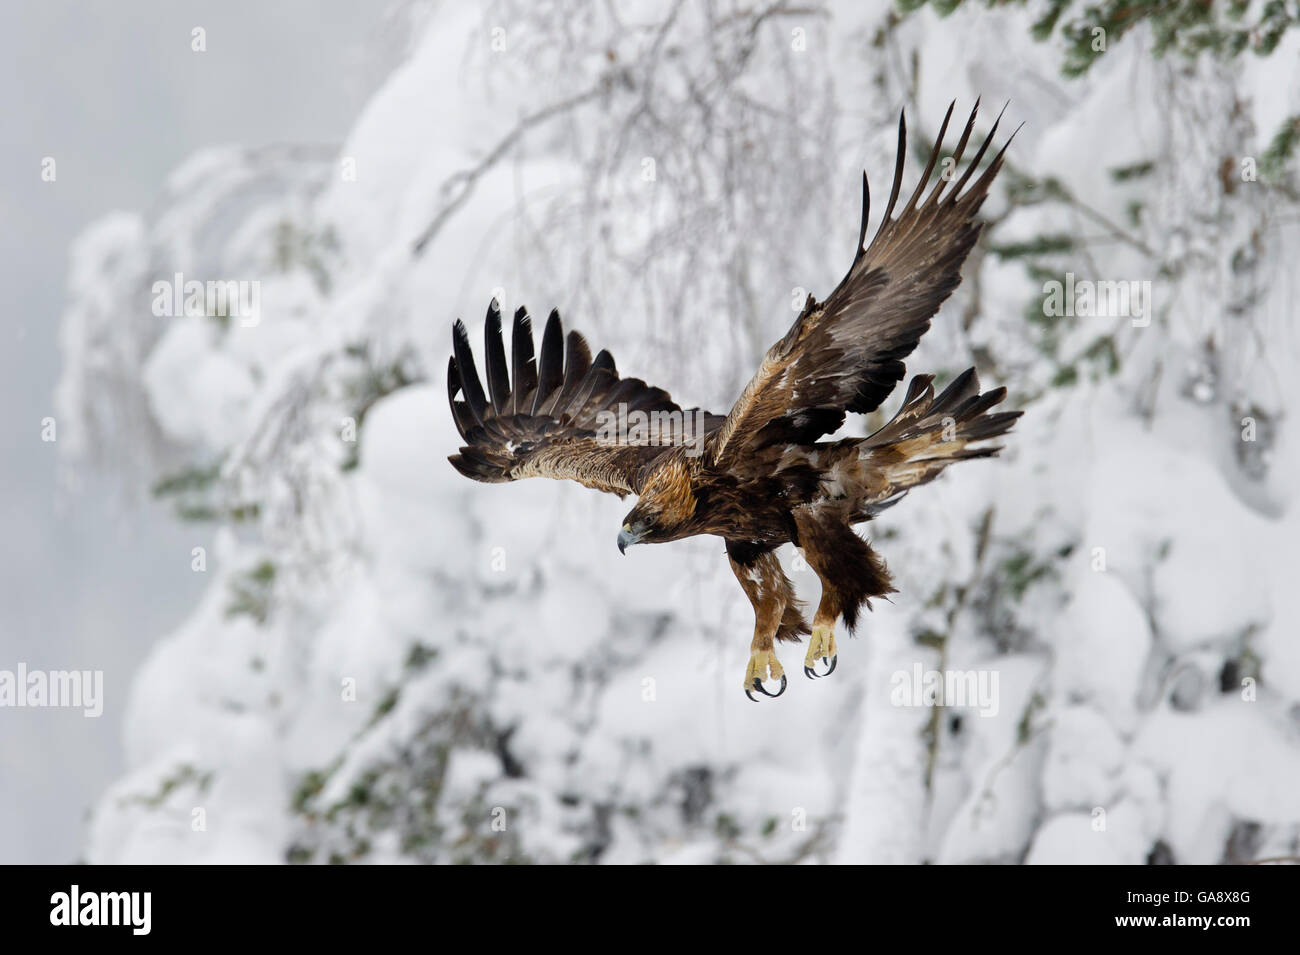 Golden Eagle (Aquila chrysaetos) in flight, Finland.  February. - Stock Image